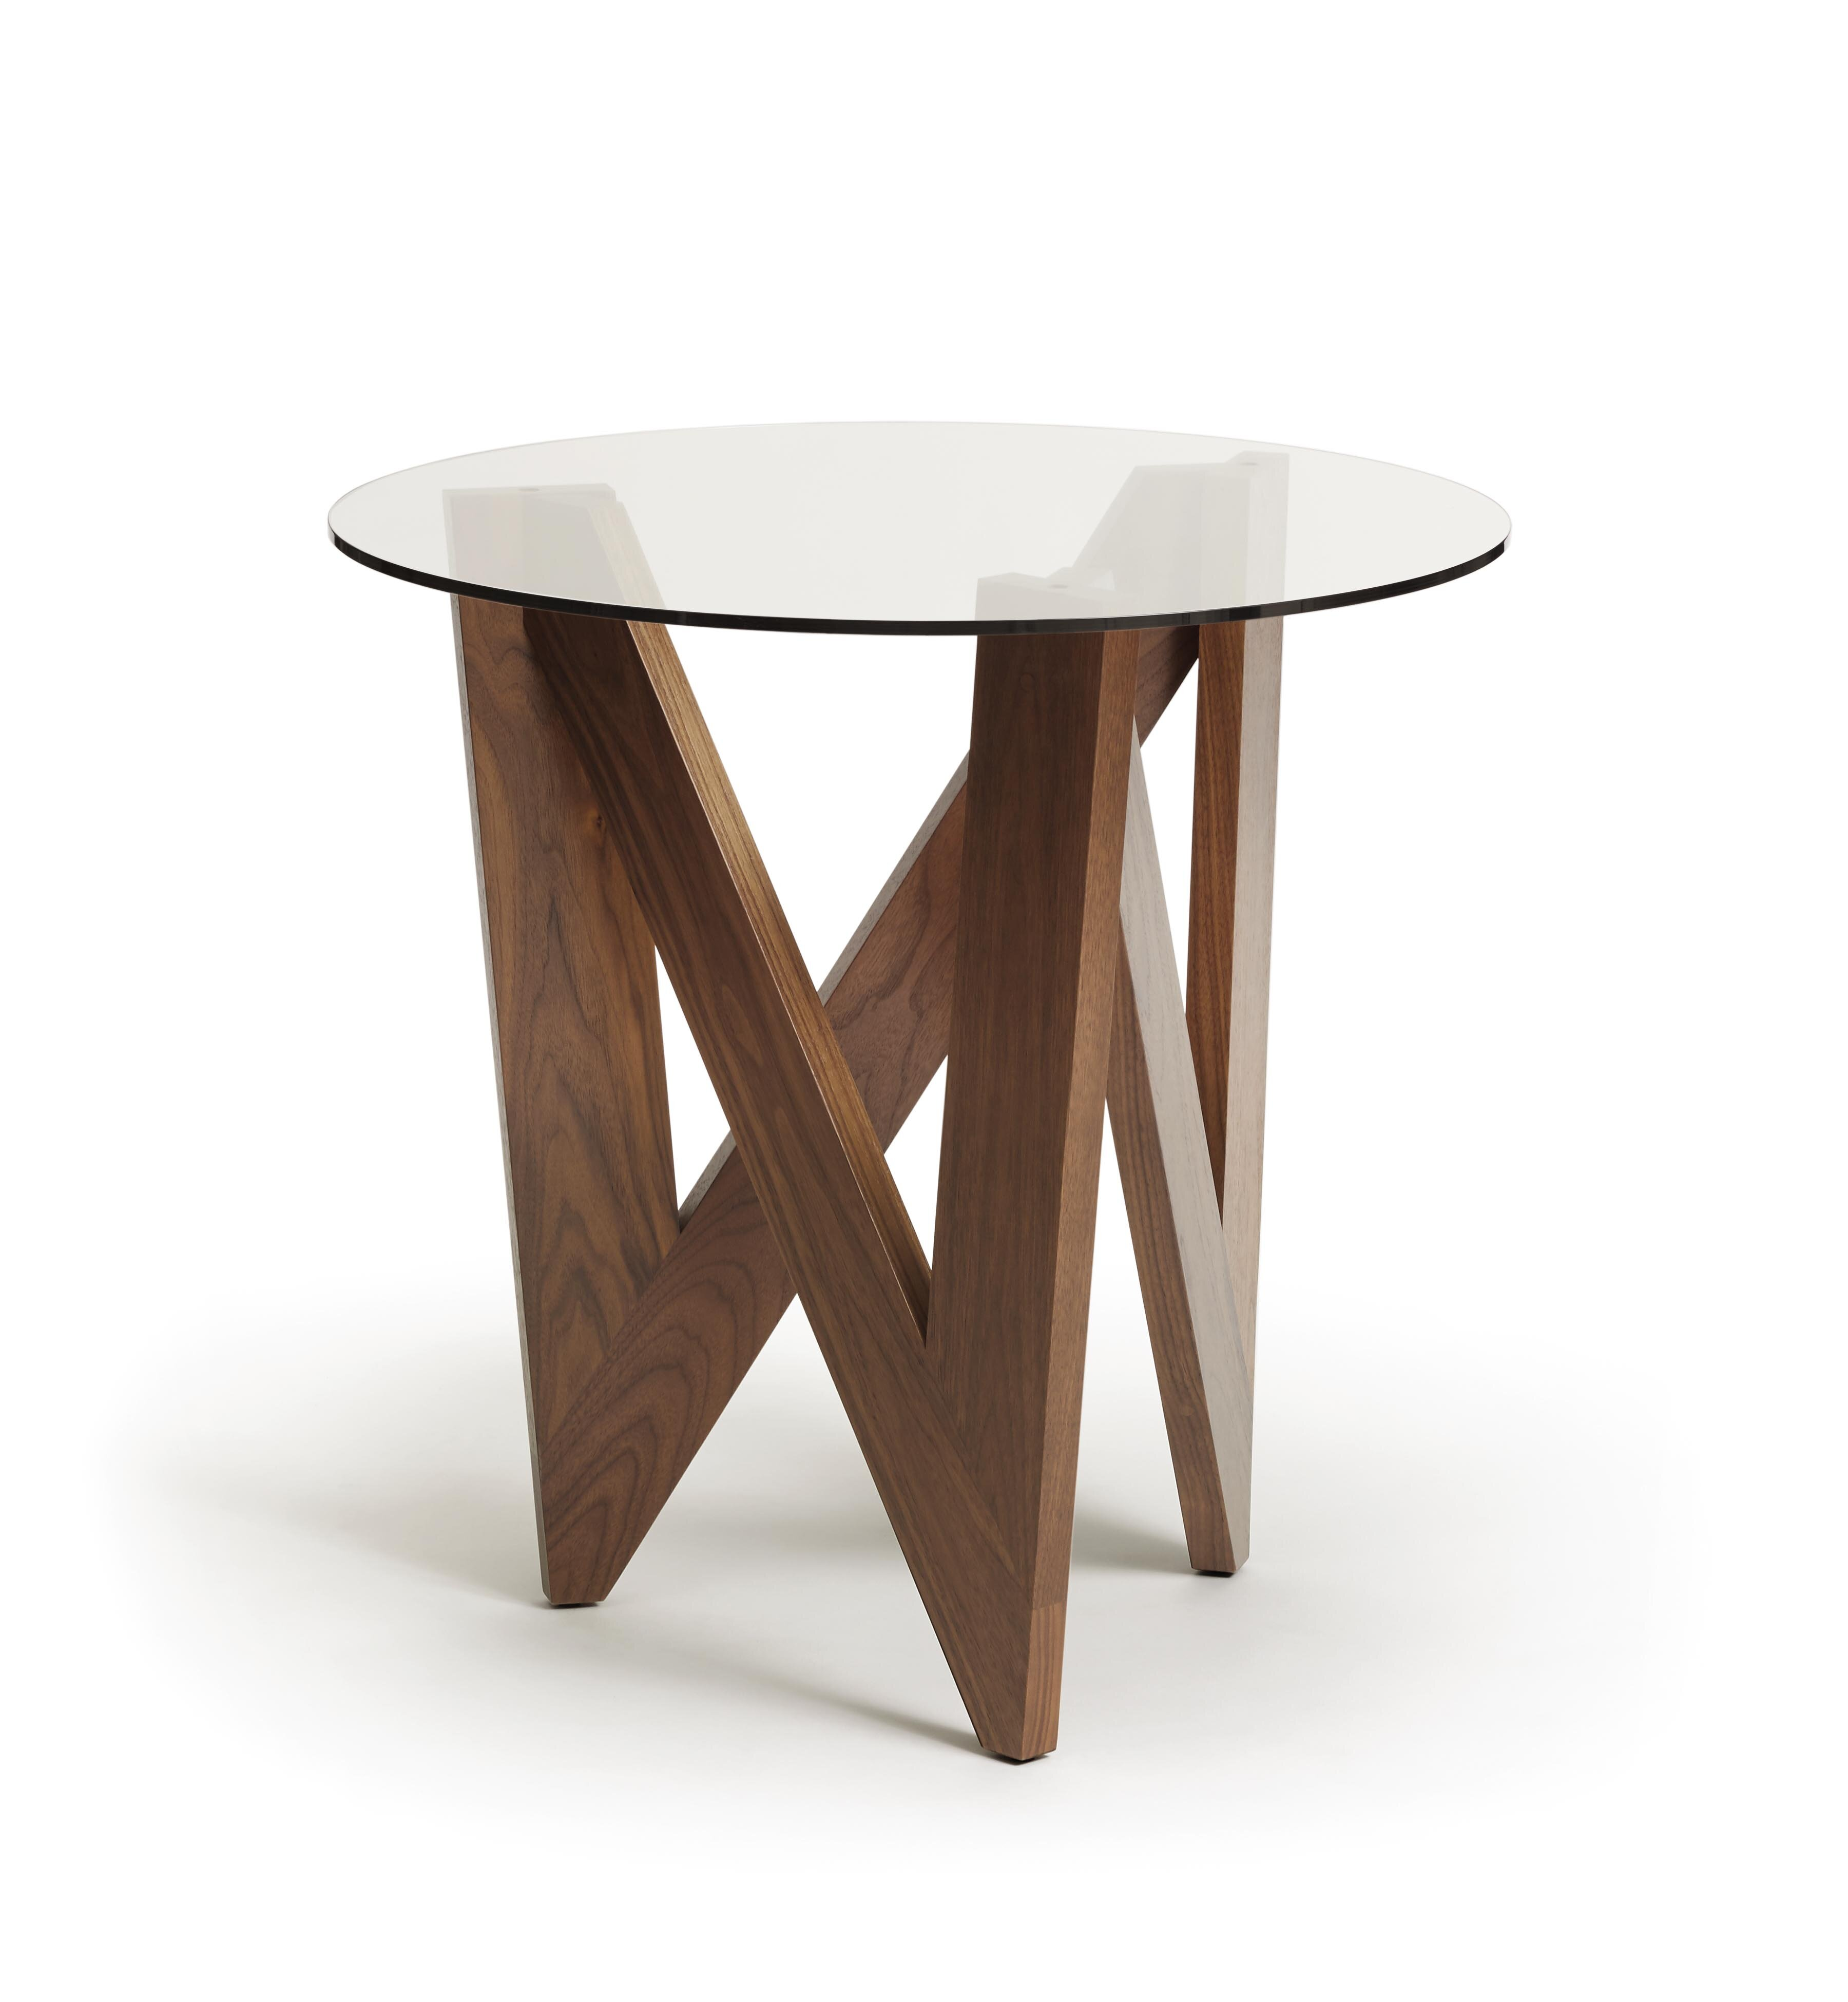 Copeland furniture check statements end table wayfair